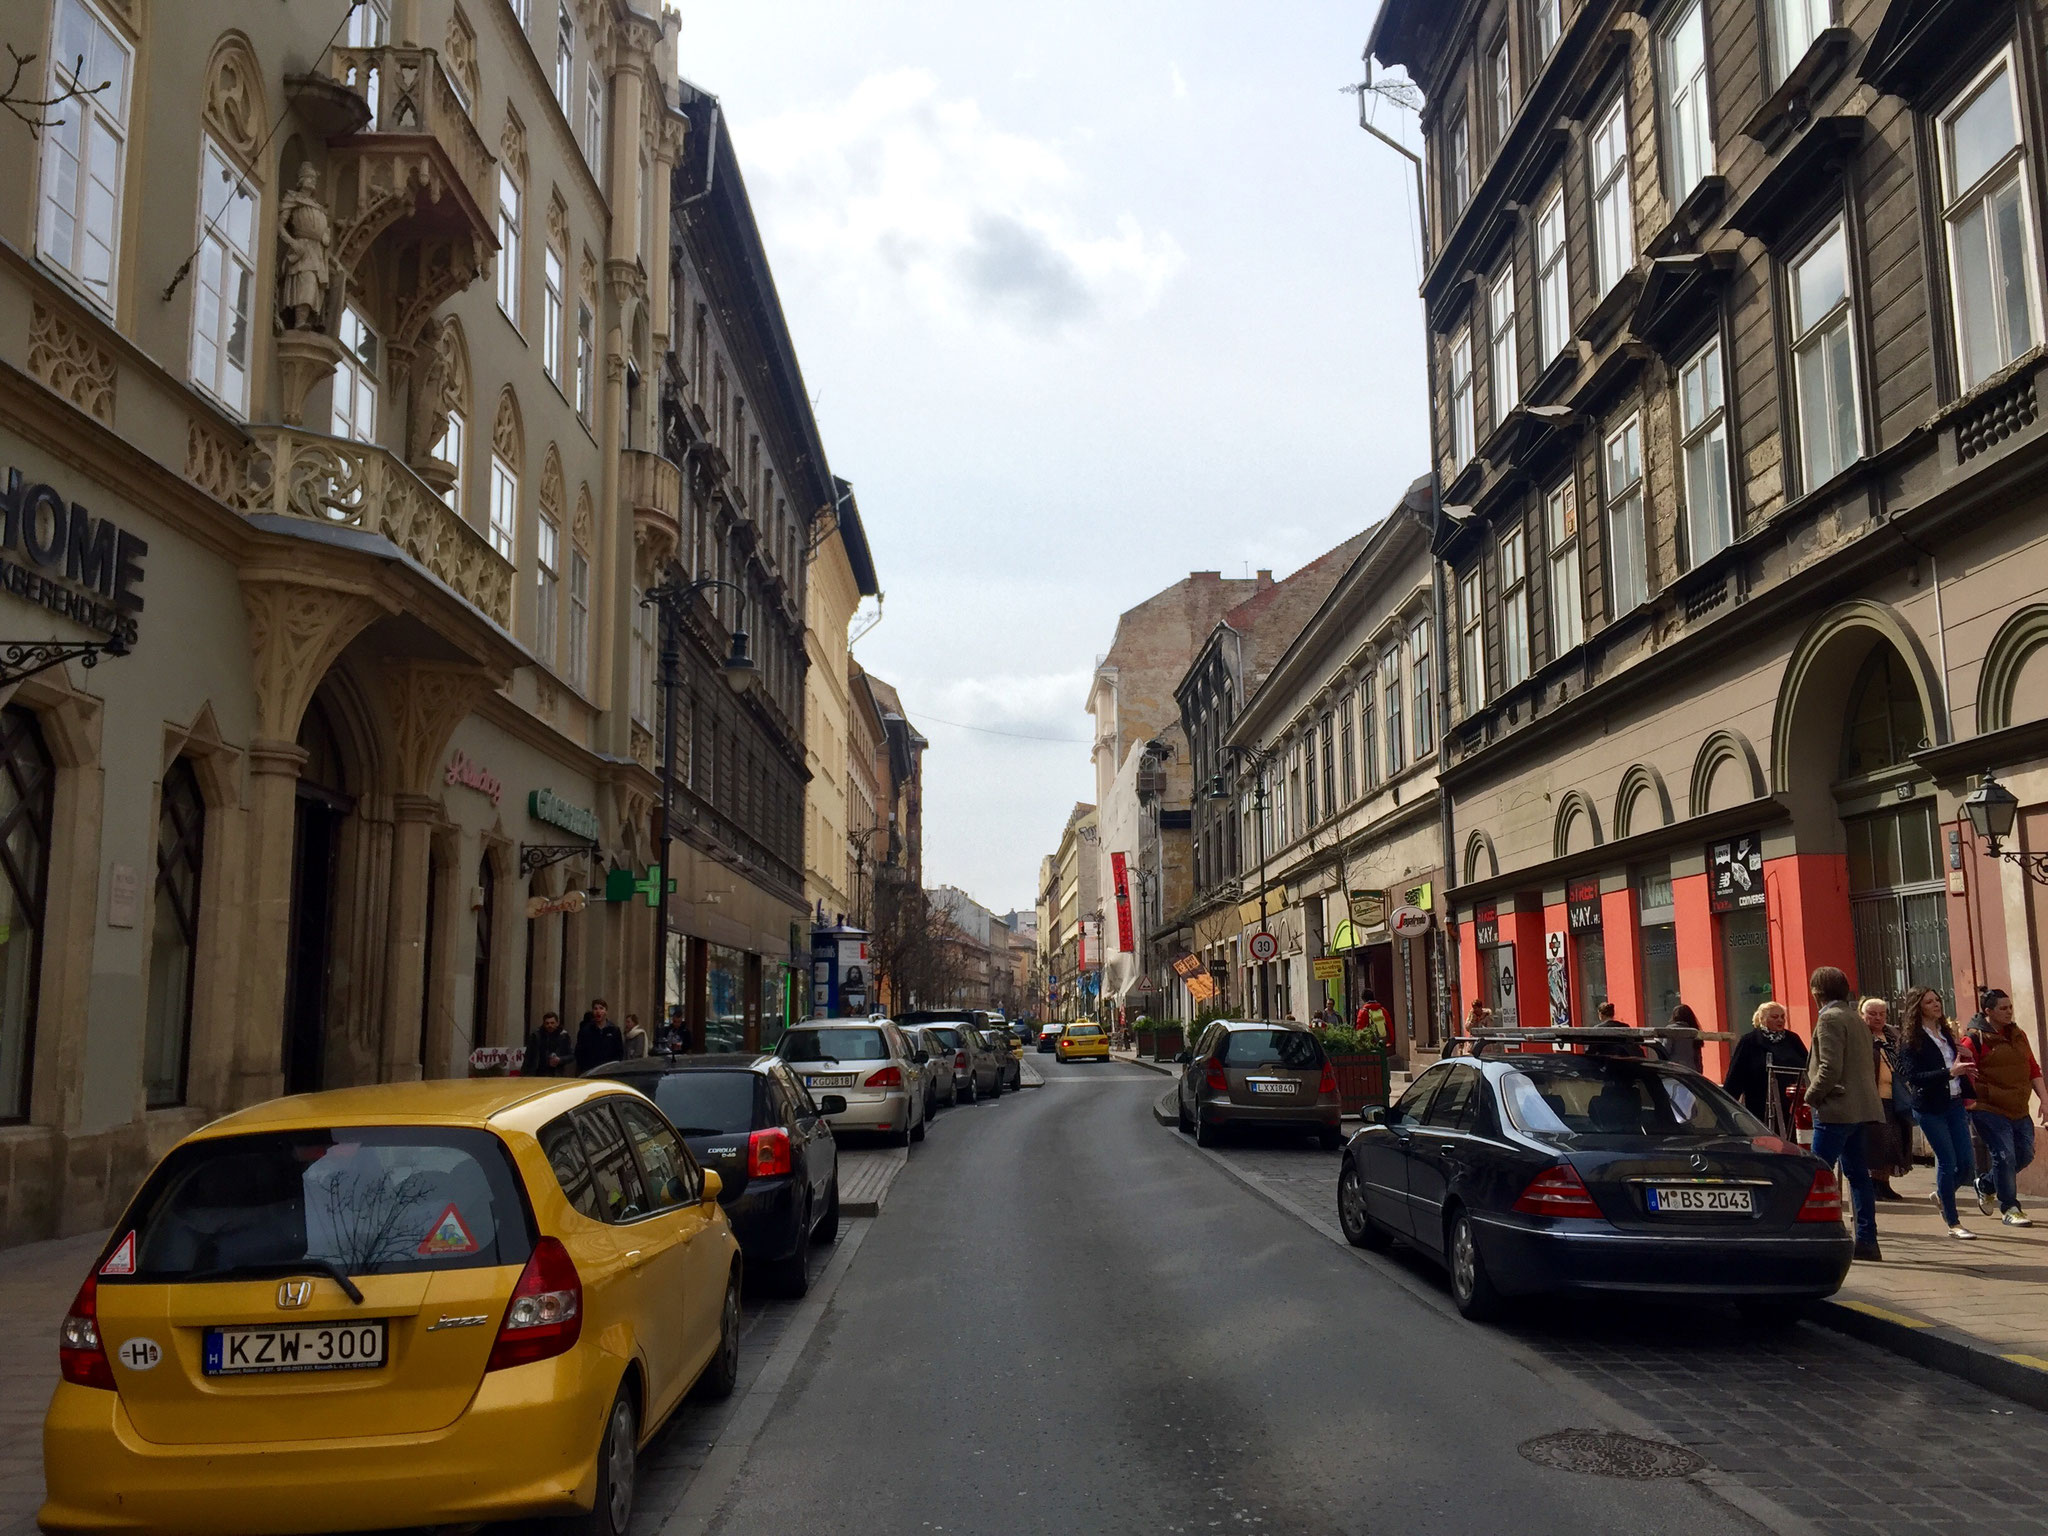 Kiraly Street, the it-place with many bars & restaurants